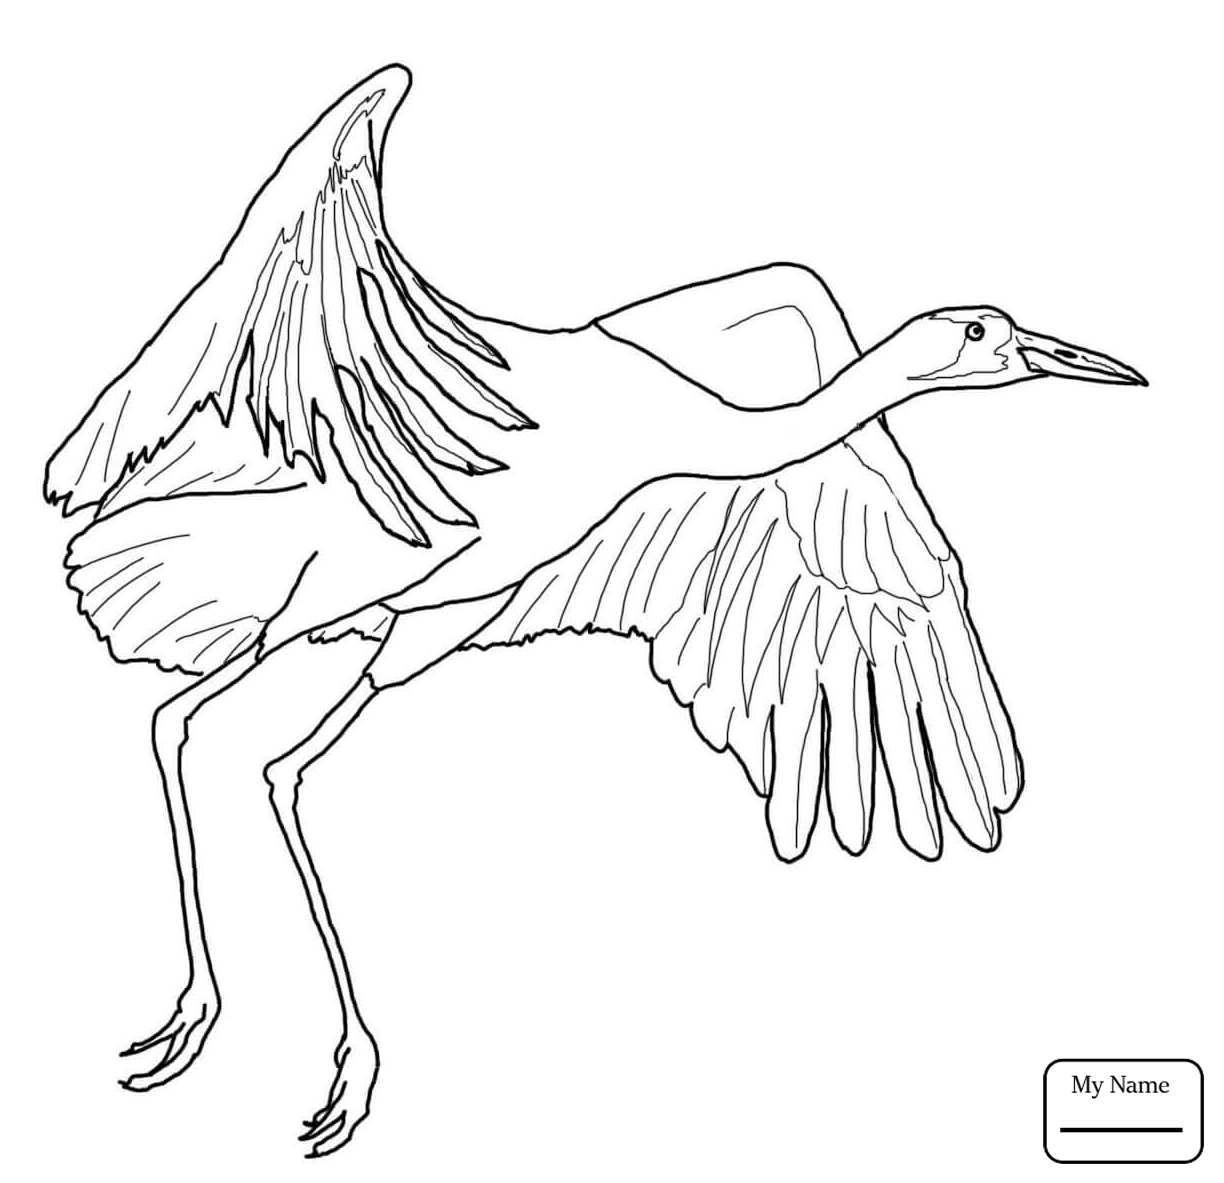 1224x1183 Coloring Pages For Kids Sandhill Crane With Cute Chick Birds